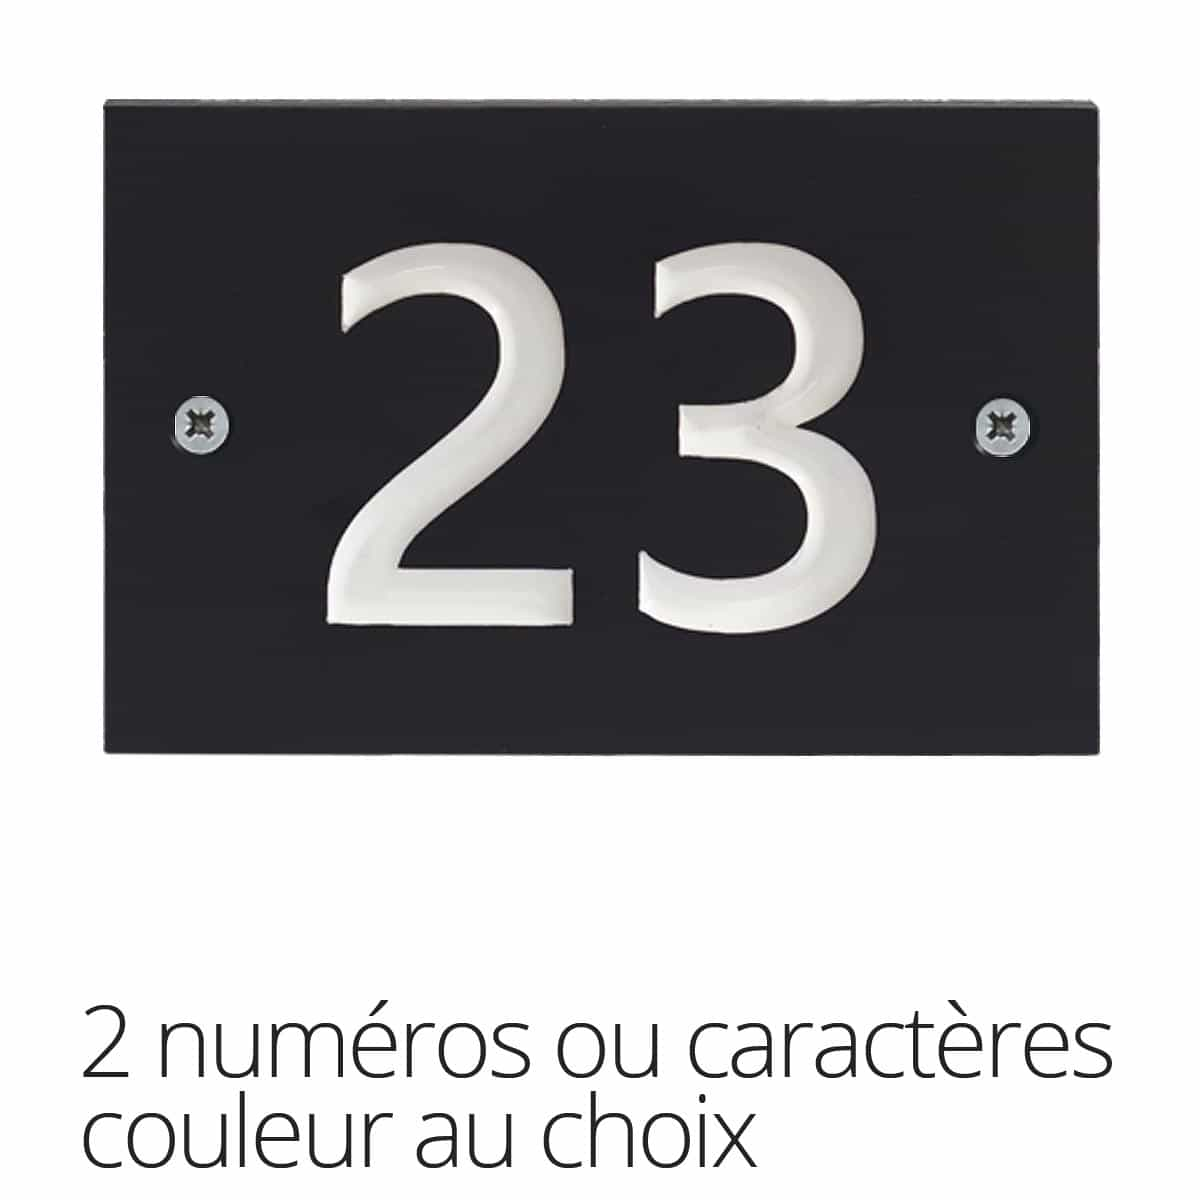 plaque numero maison jardiniere accueil design et mobilier. Black Bedroom Furniture Sets. Home Design Ideas